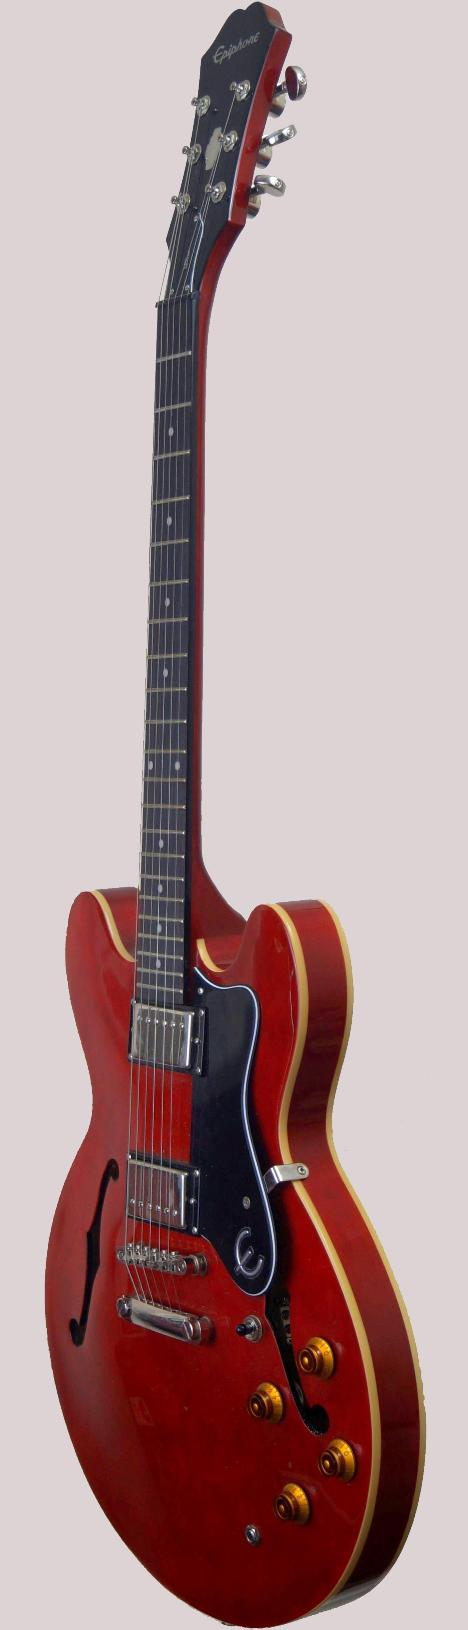 epi cherry archtop electric guitar at Ukulele Corner